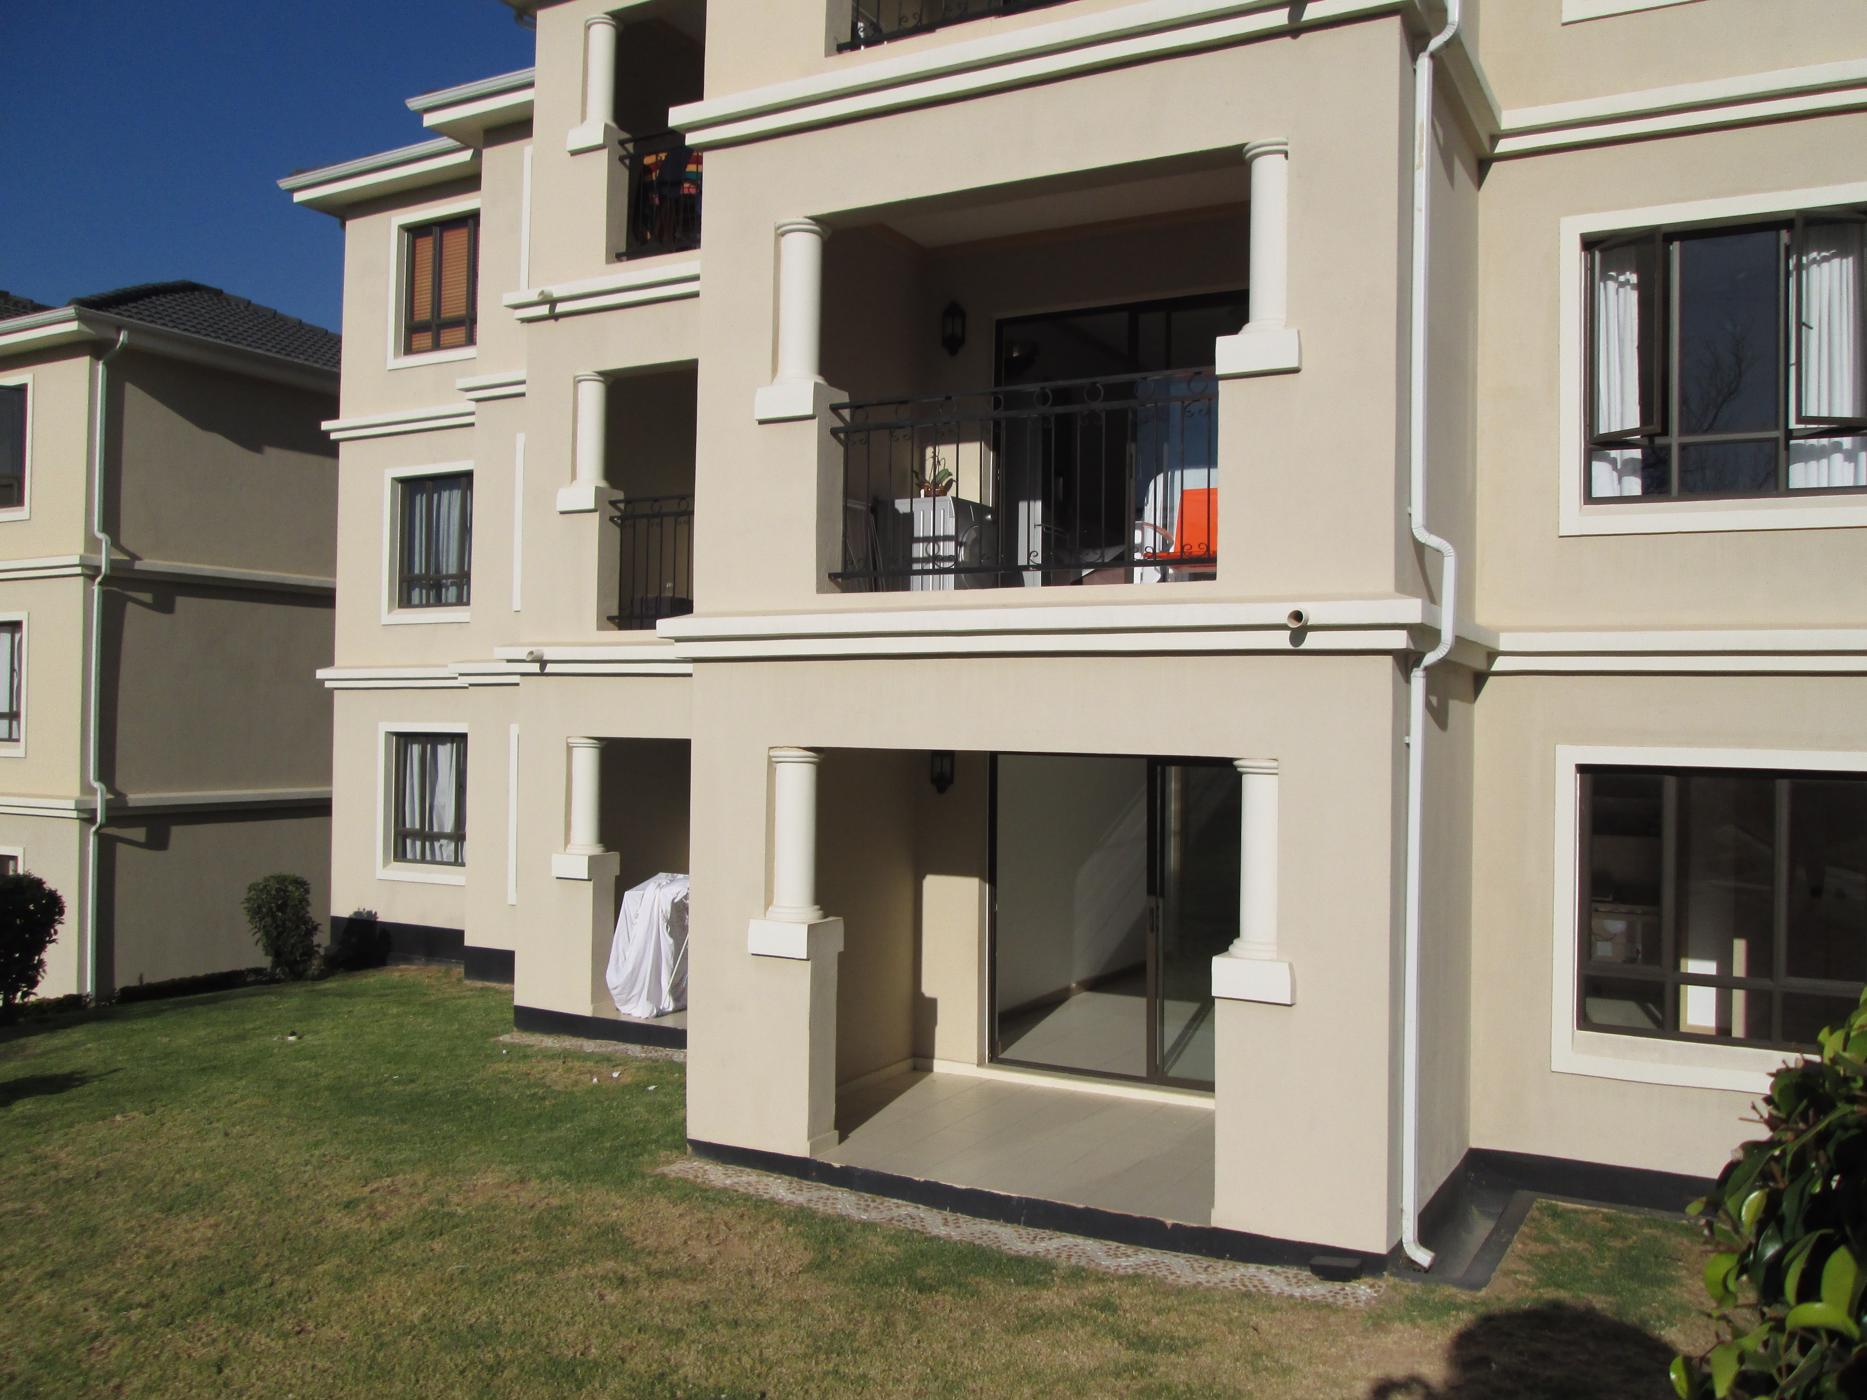 https://listing.pamgolding.co.za/images/properties/201911/1551739/H/1551739_H_18.jpg